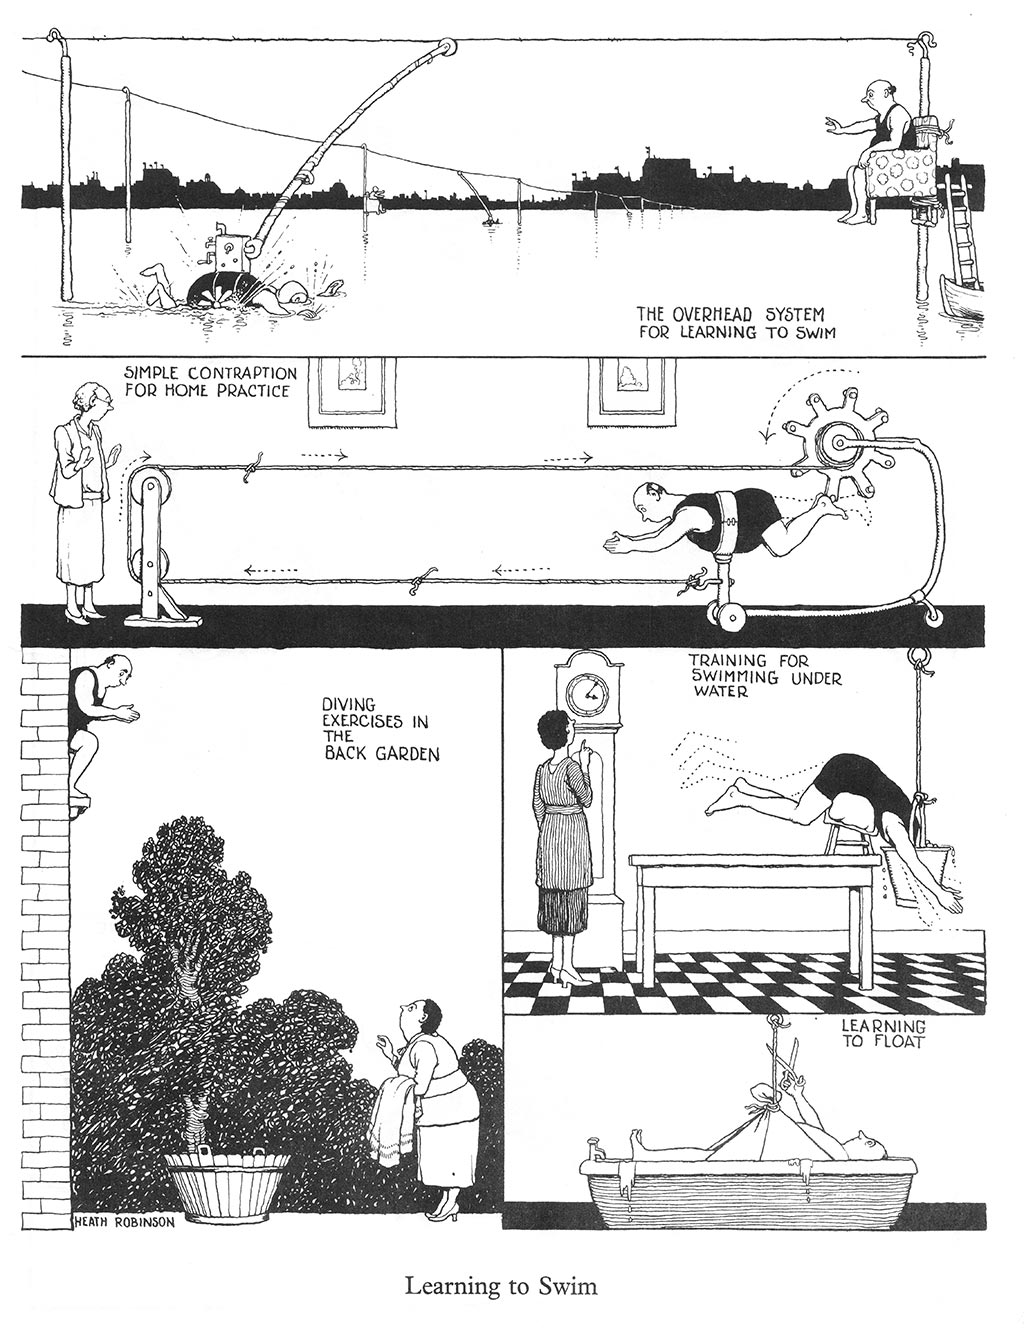 william_heath_robinson_inventions_-_page_019